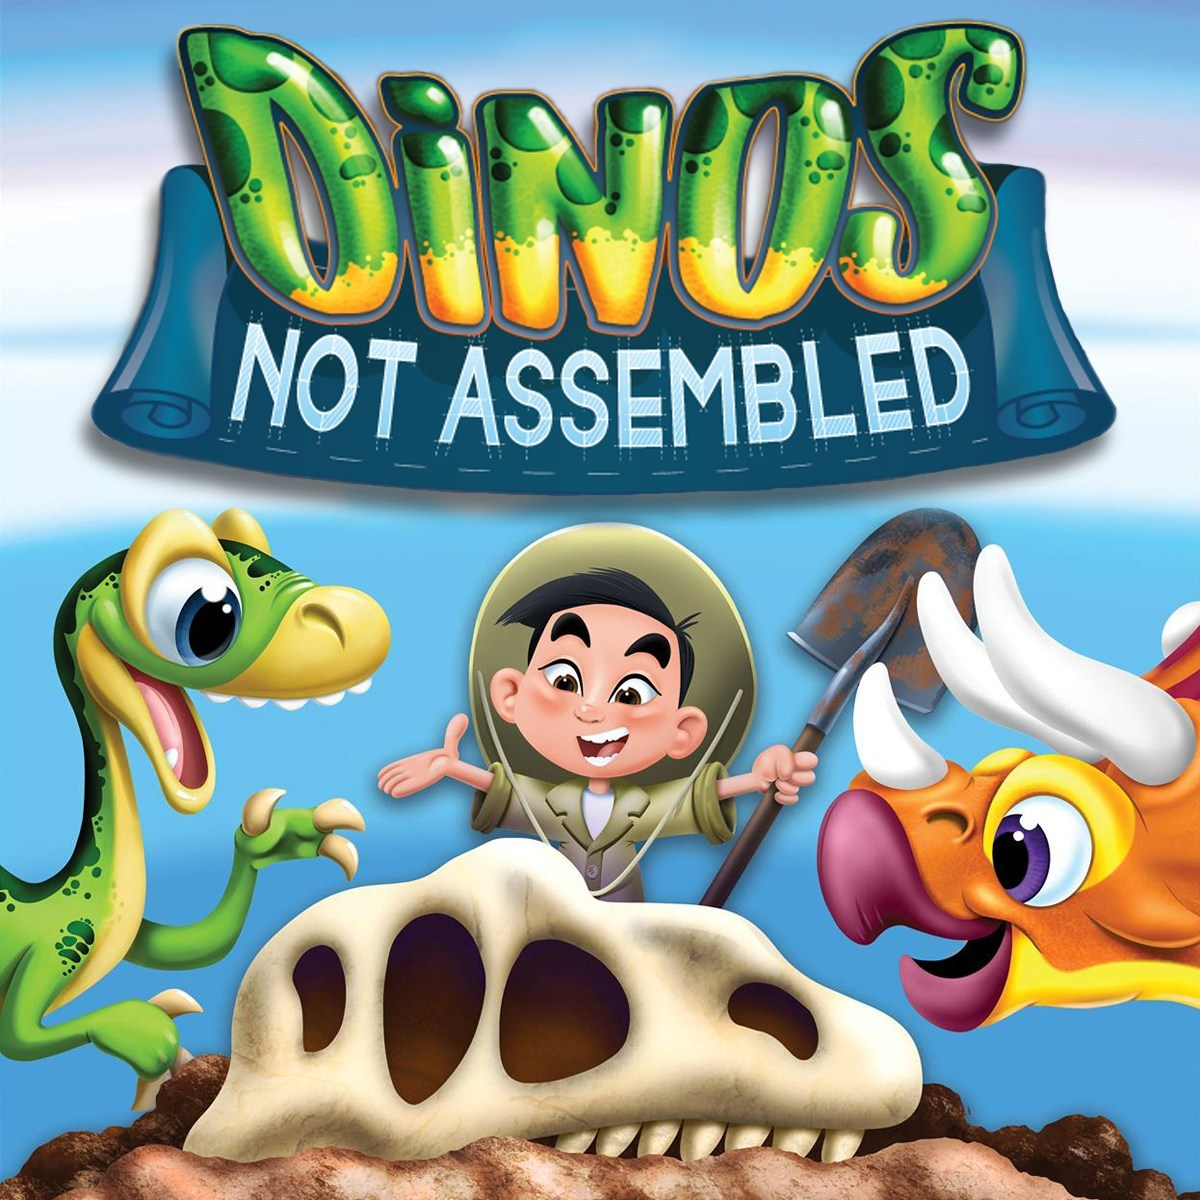 Dinos Not Assembled cover